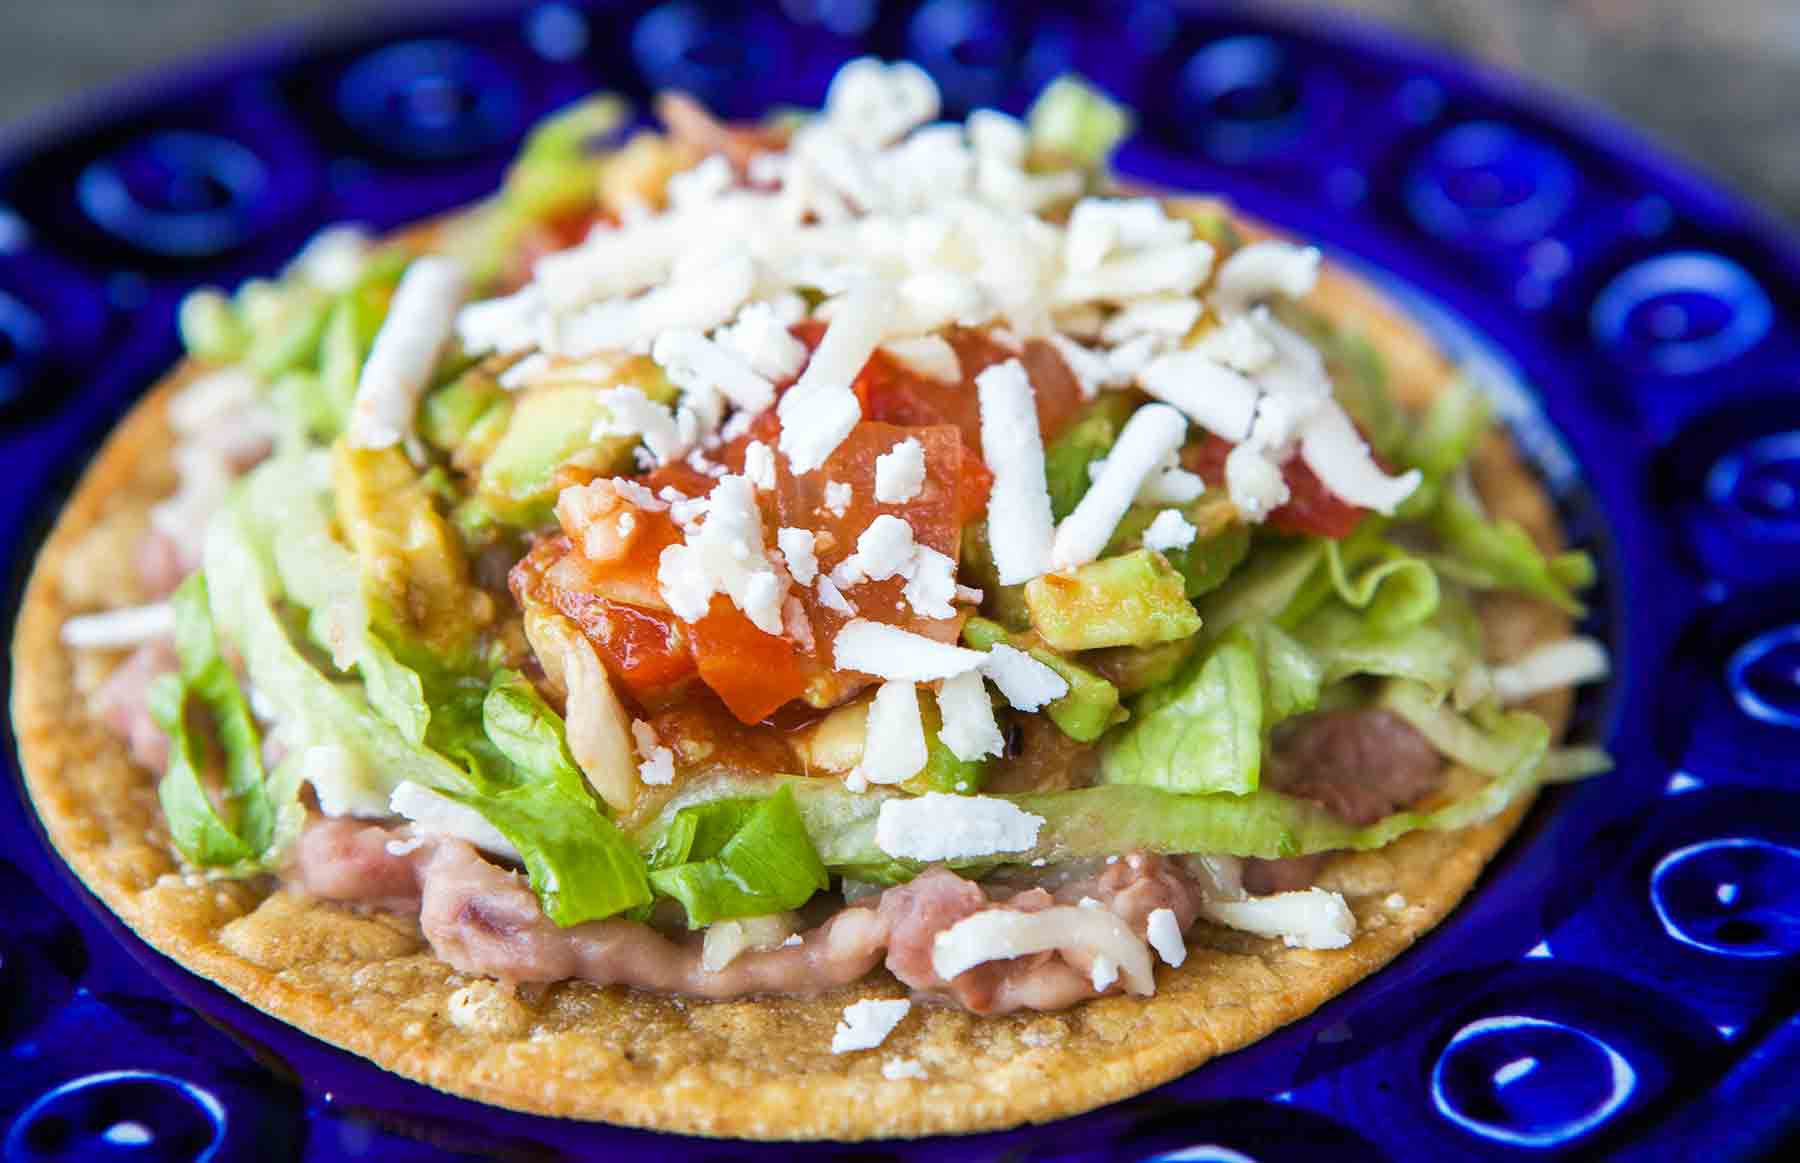 Mexican Tostada on blue plate